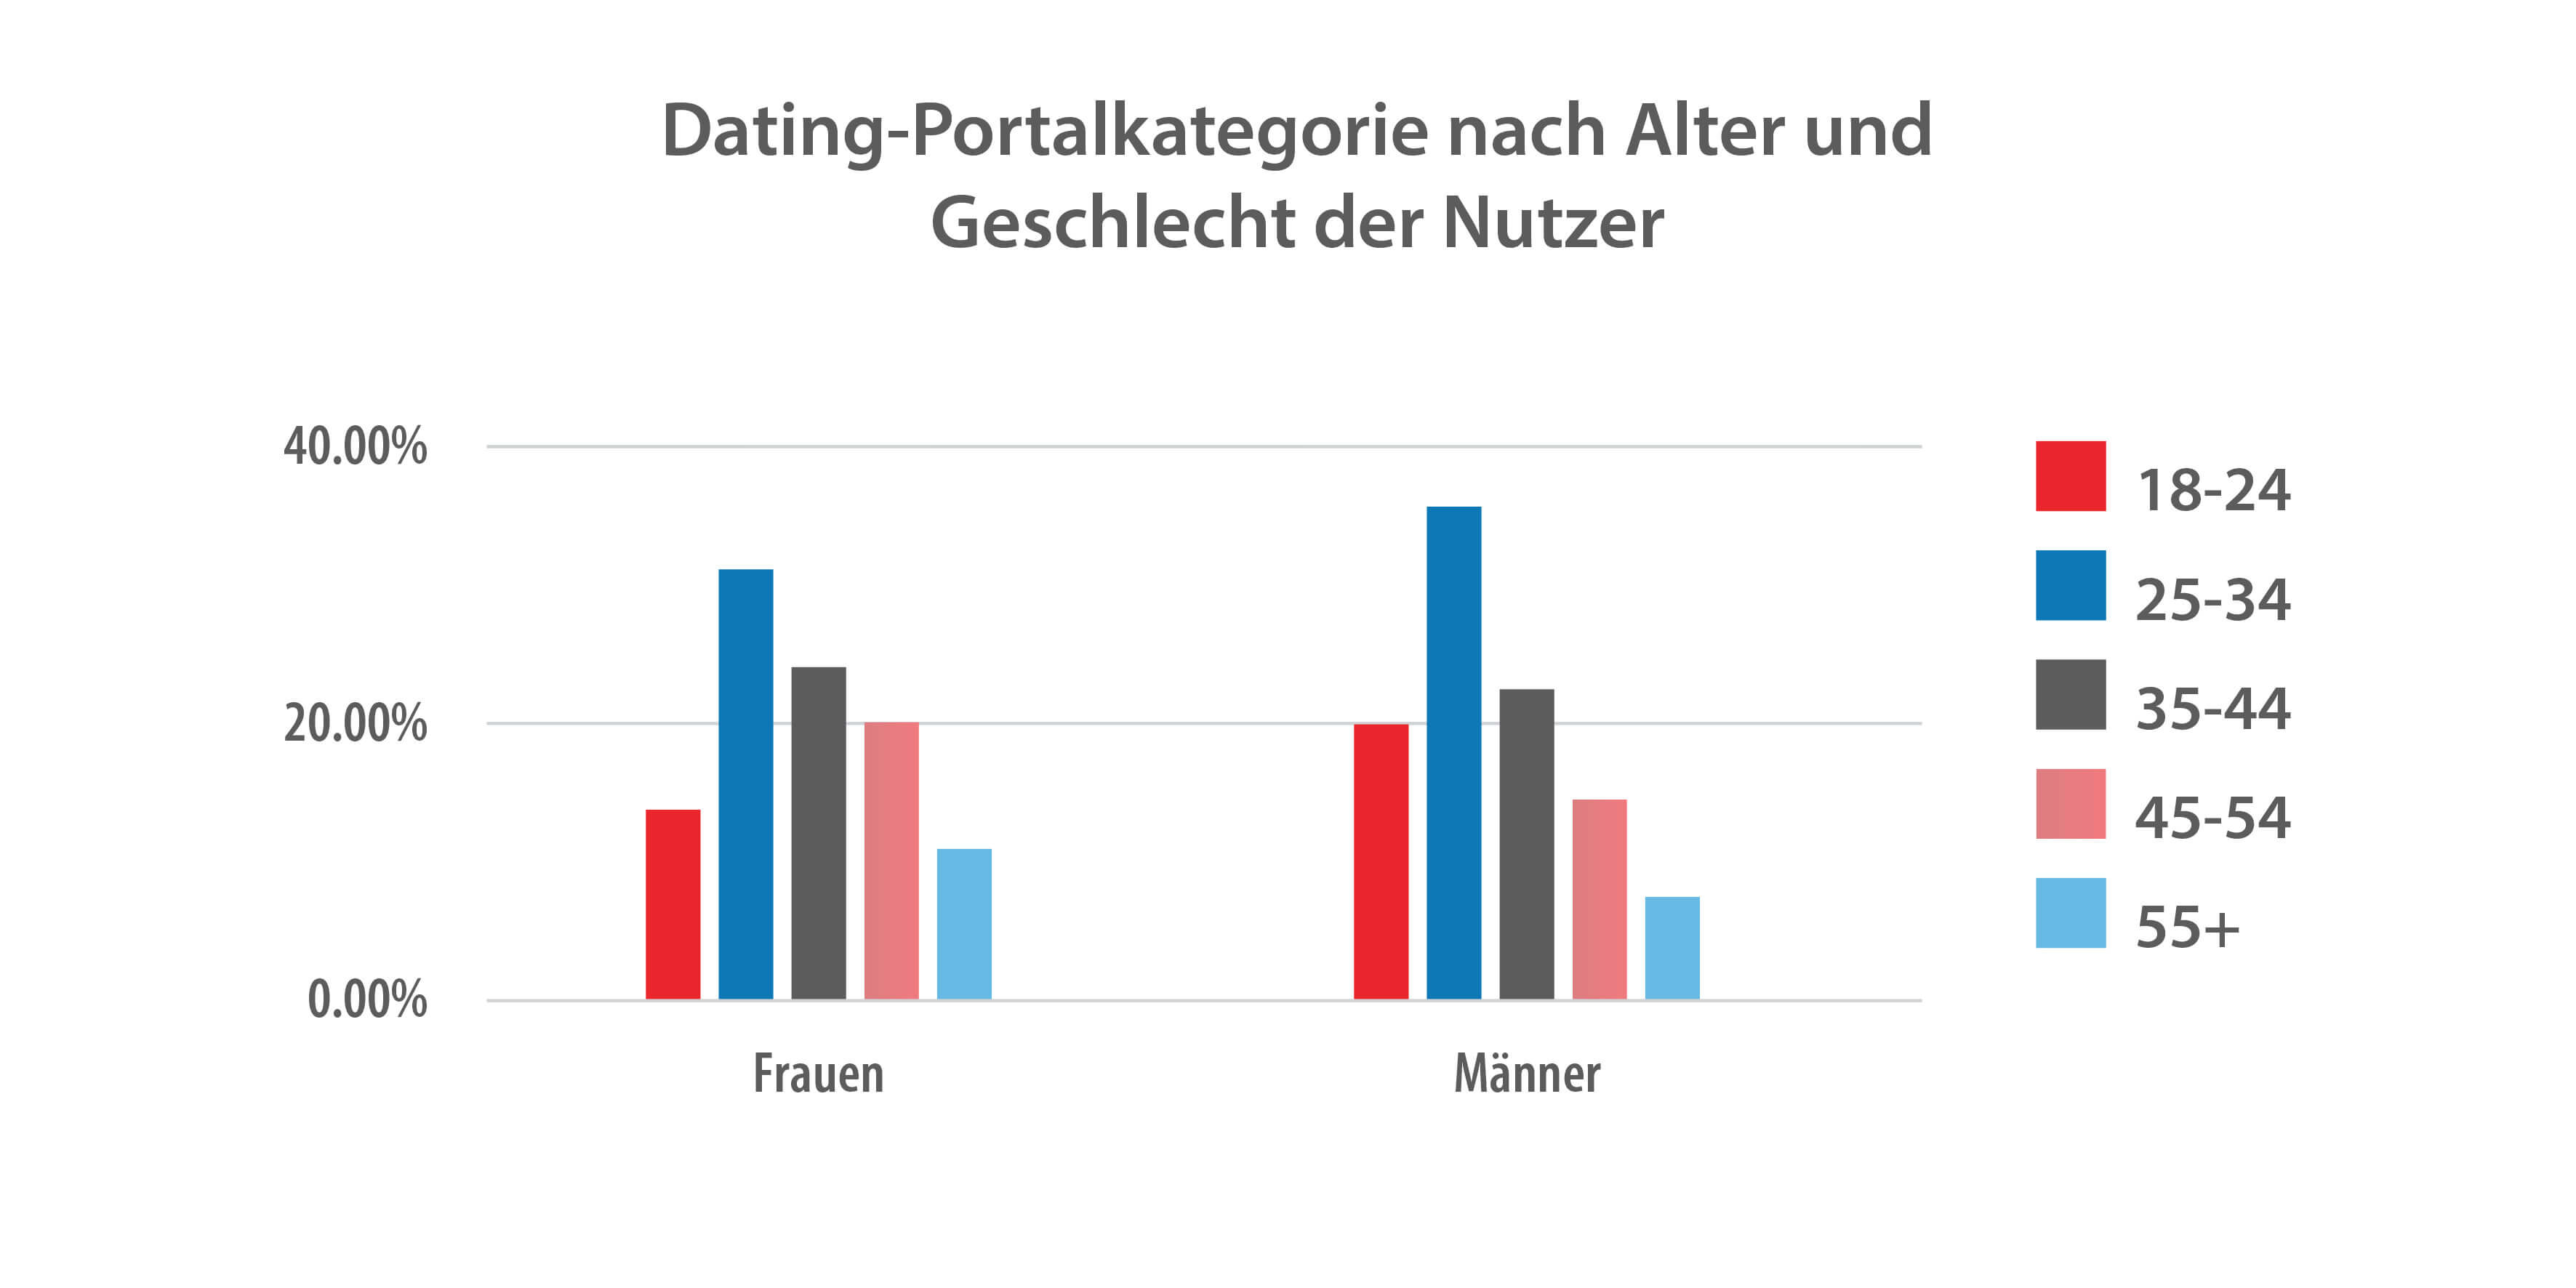 Online-dating-statistik 2020 kanada